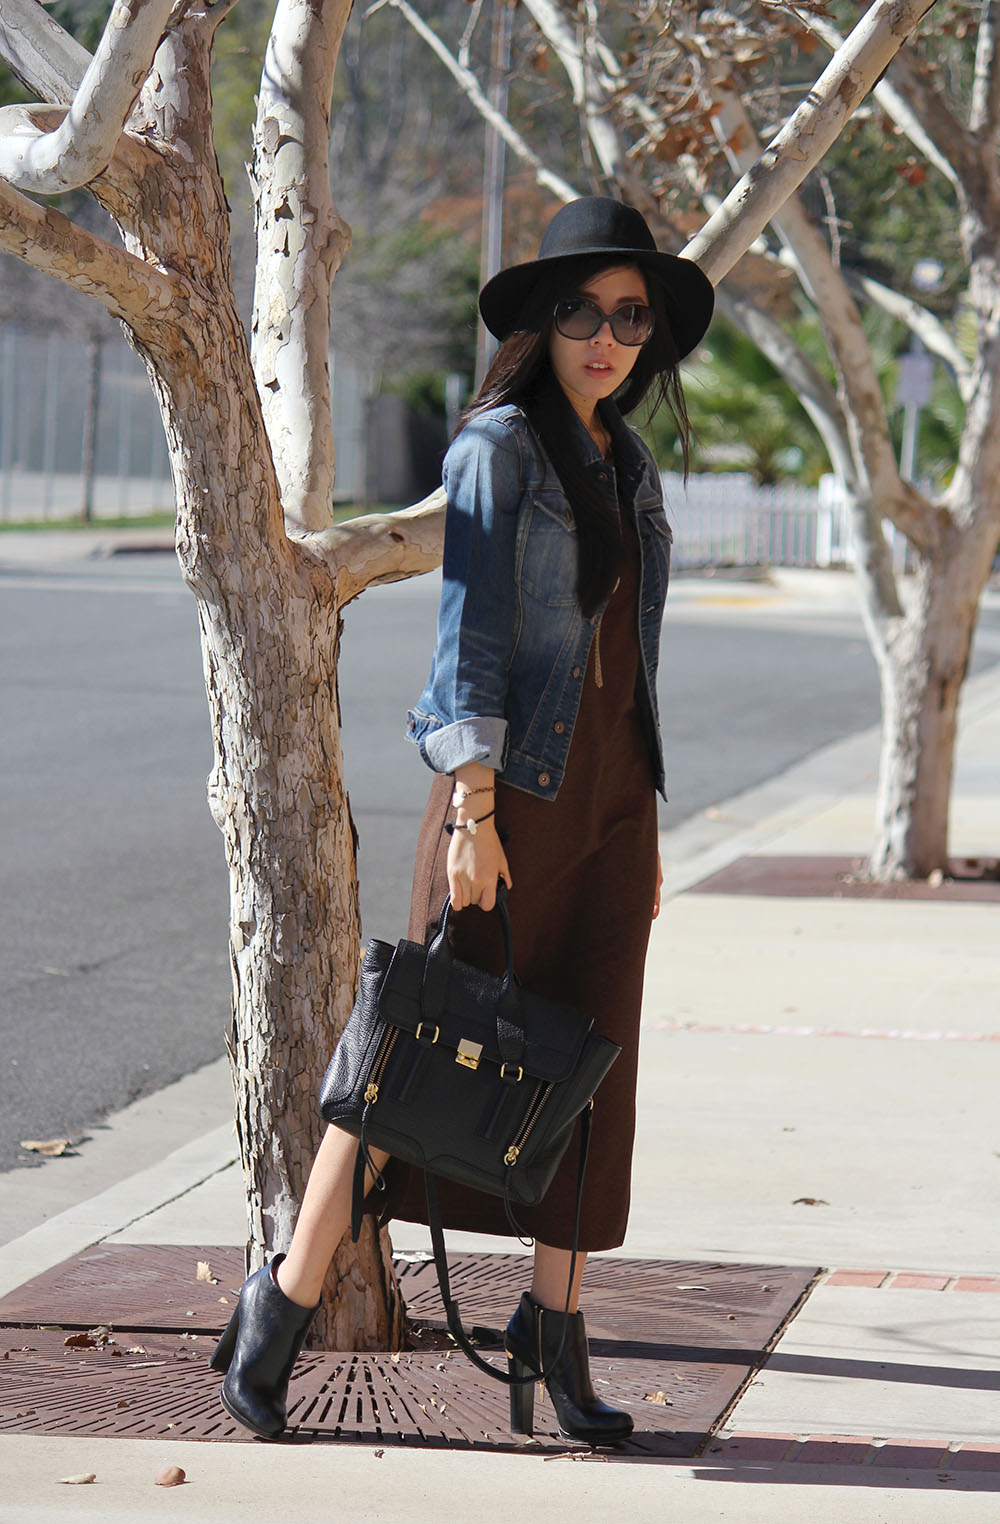 What to wear to the Farmer's Market - Maxi Dress and Jean Jacket - Simple Jean Jacket and Dress Look _ Adrienne Nguyen - Invictus - Pharmacy Student Style Blogger - San Diego